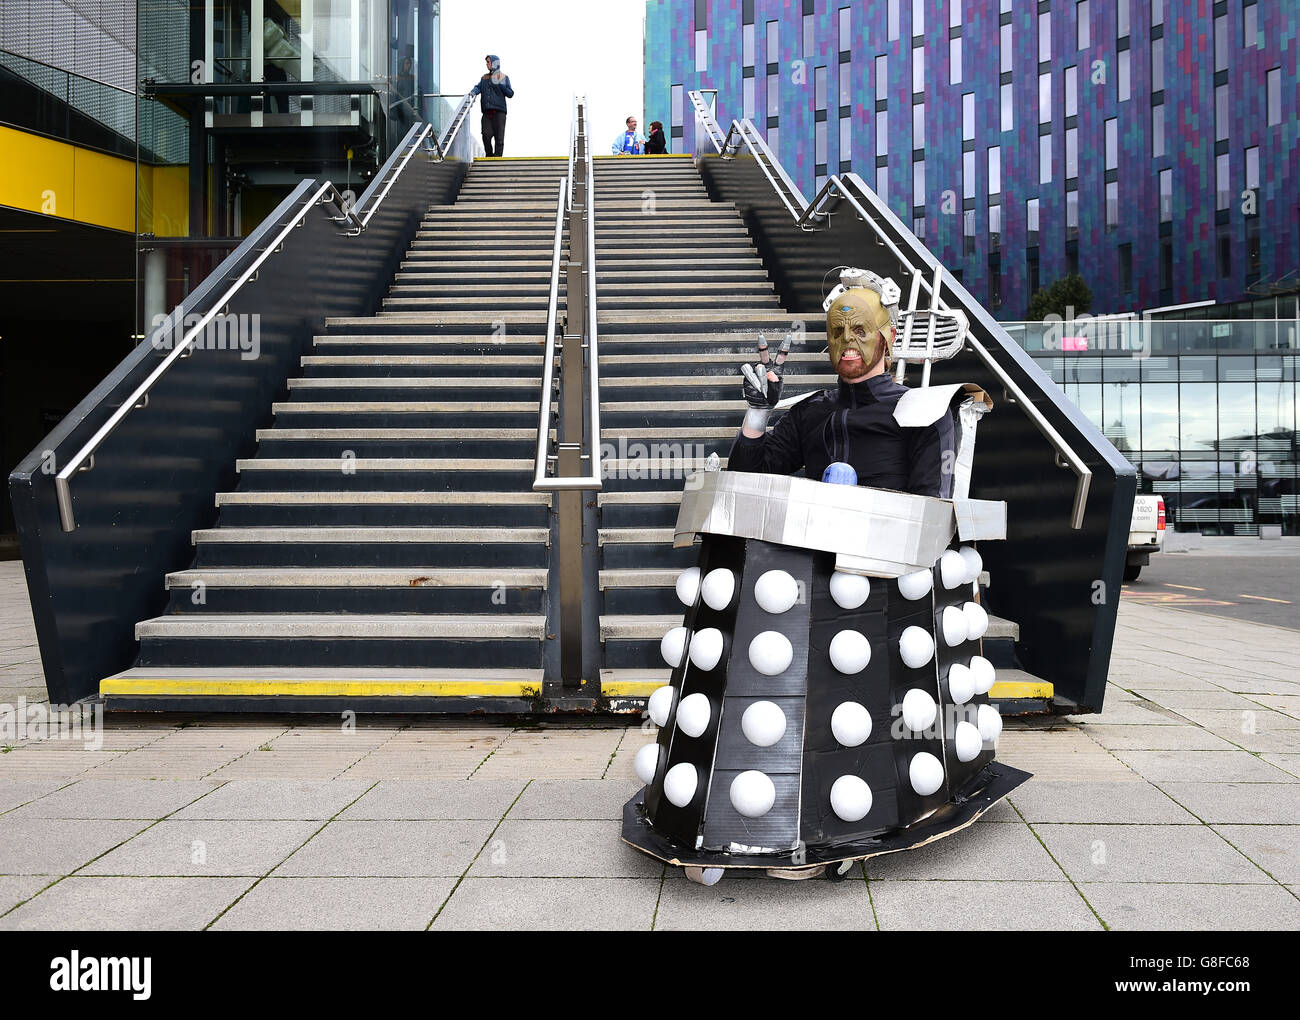 Doctor Who Festival - London - Stock Image